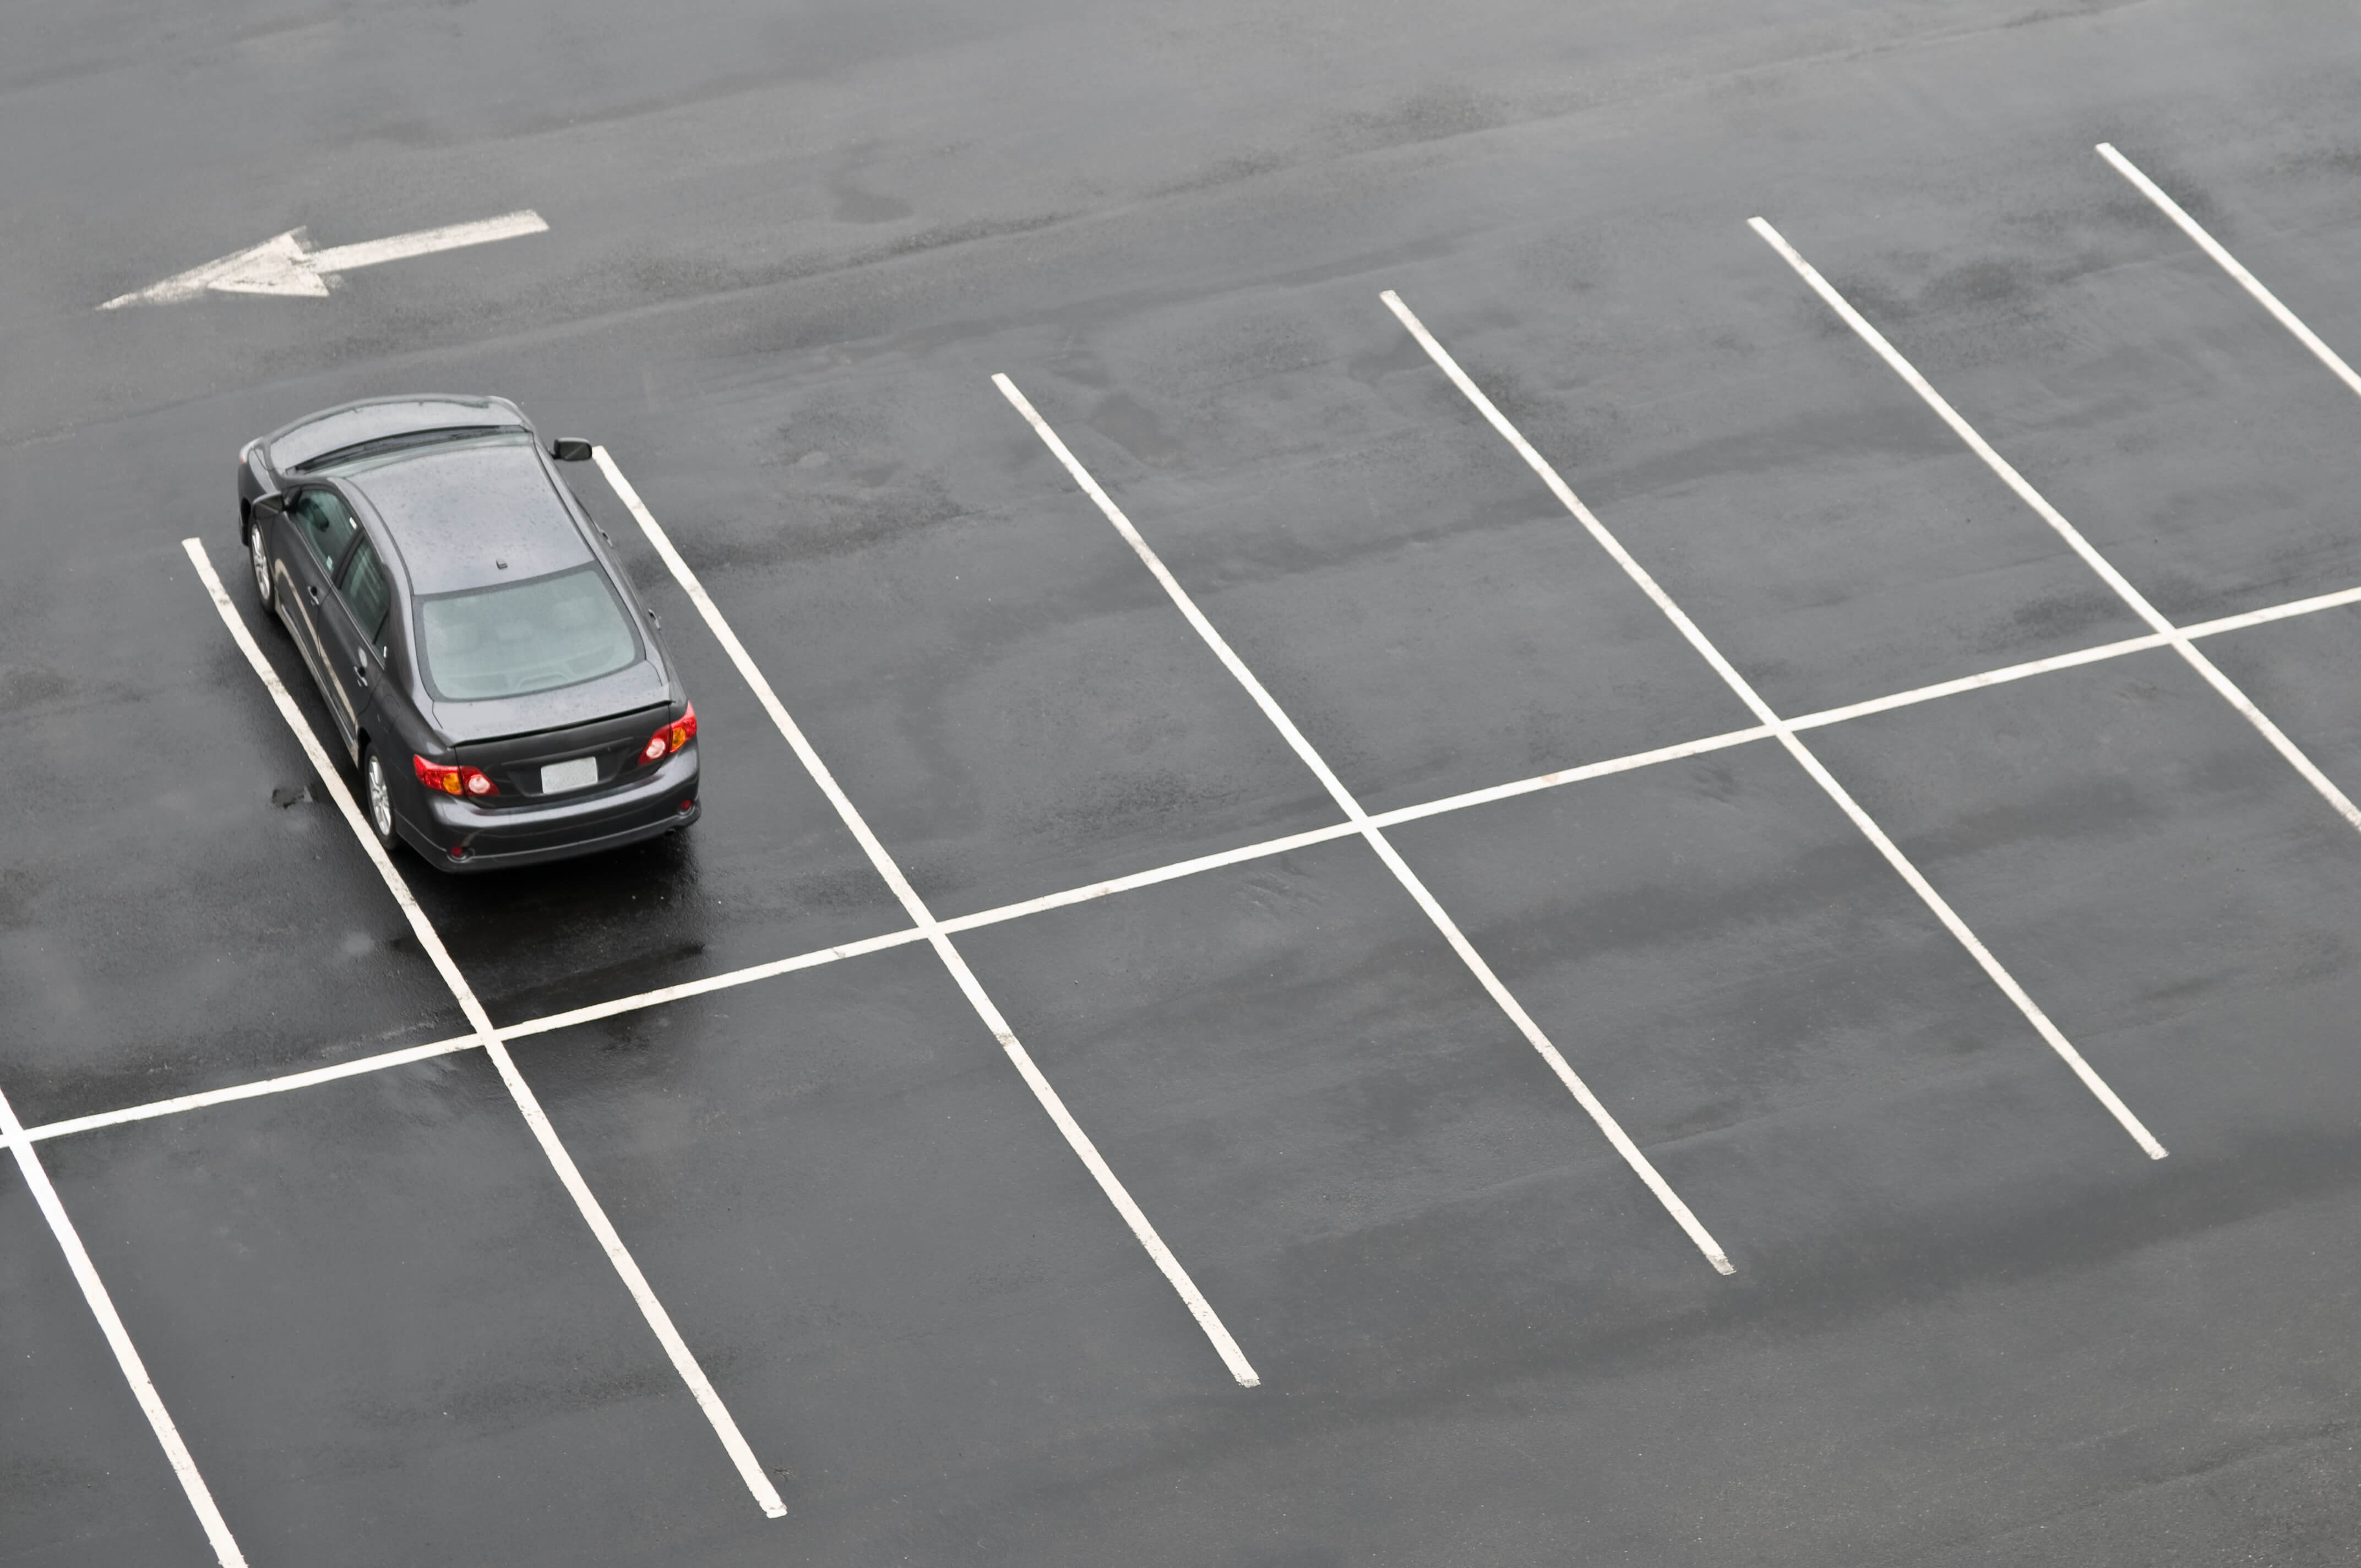 How to Keep Your Parking Lot Safe